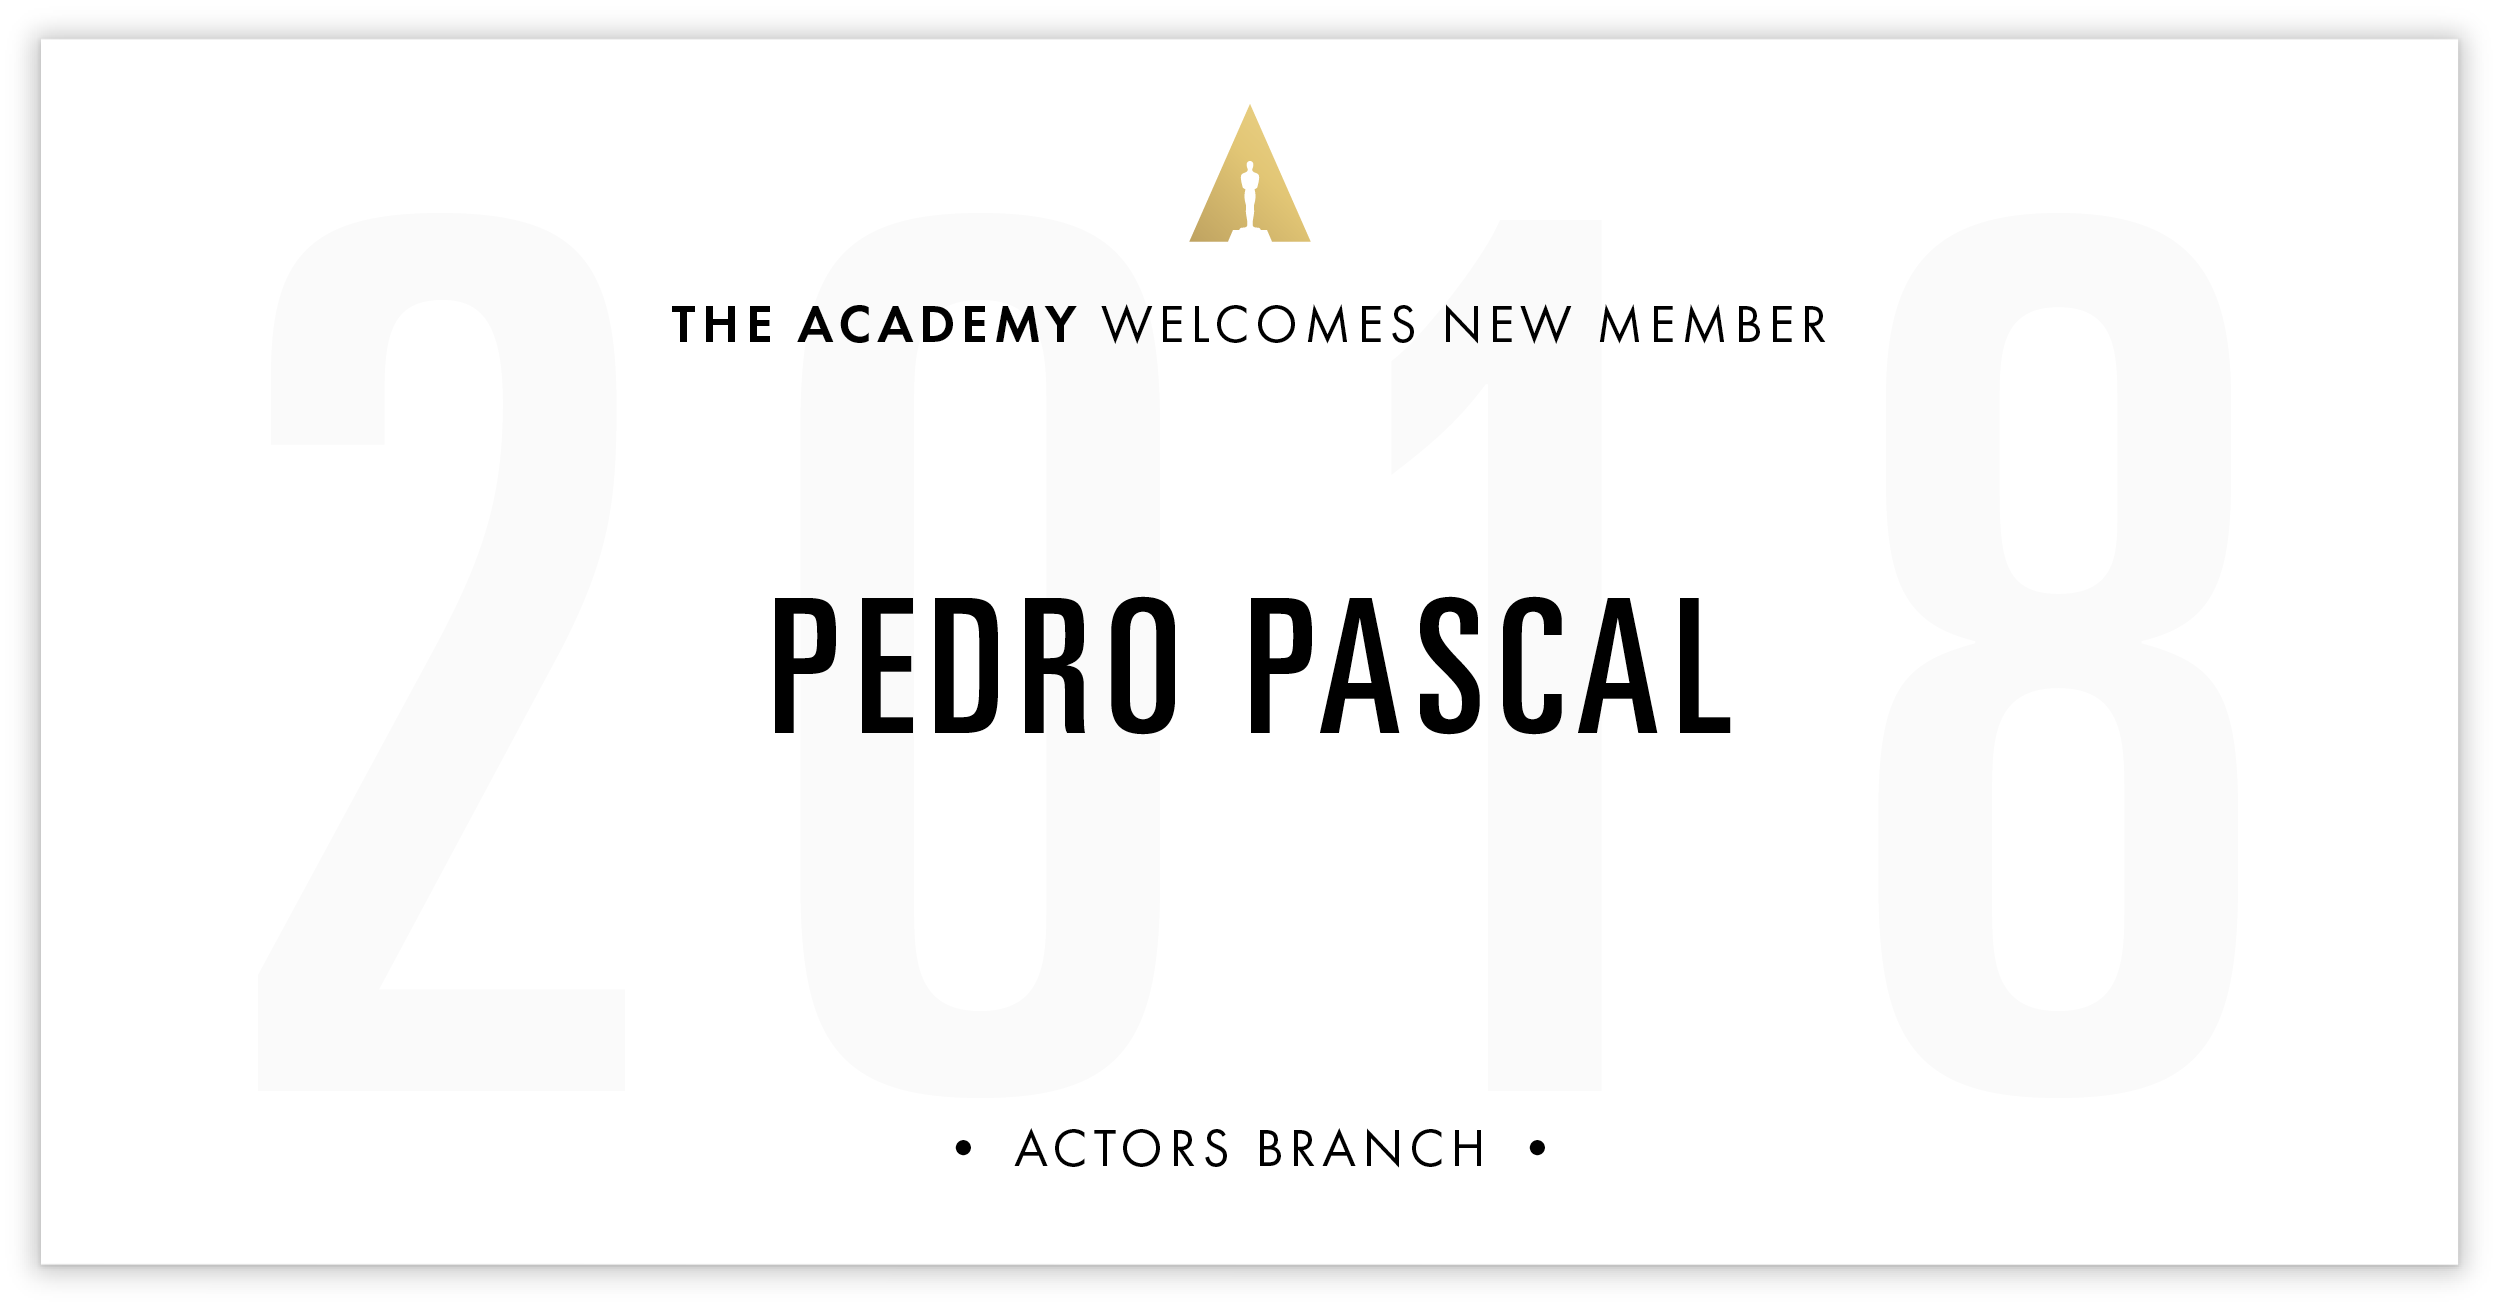 Pedro Pascal is invited!